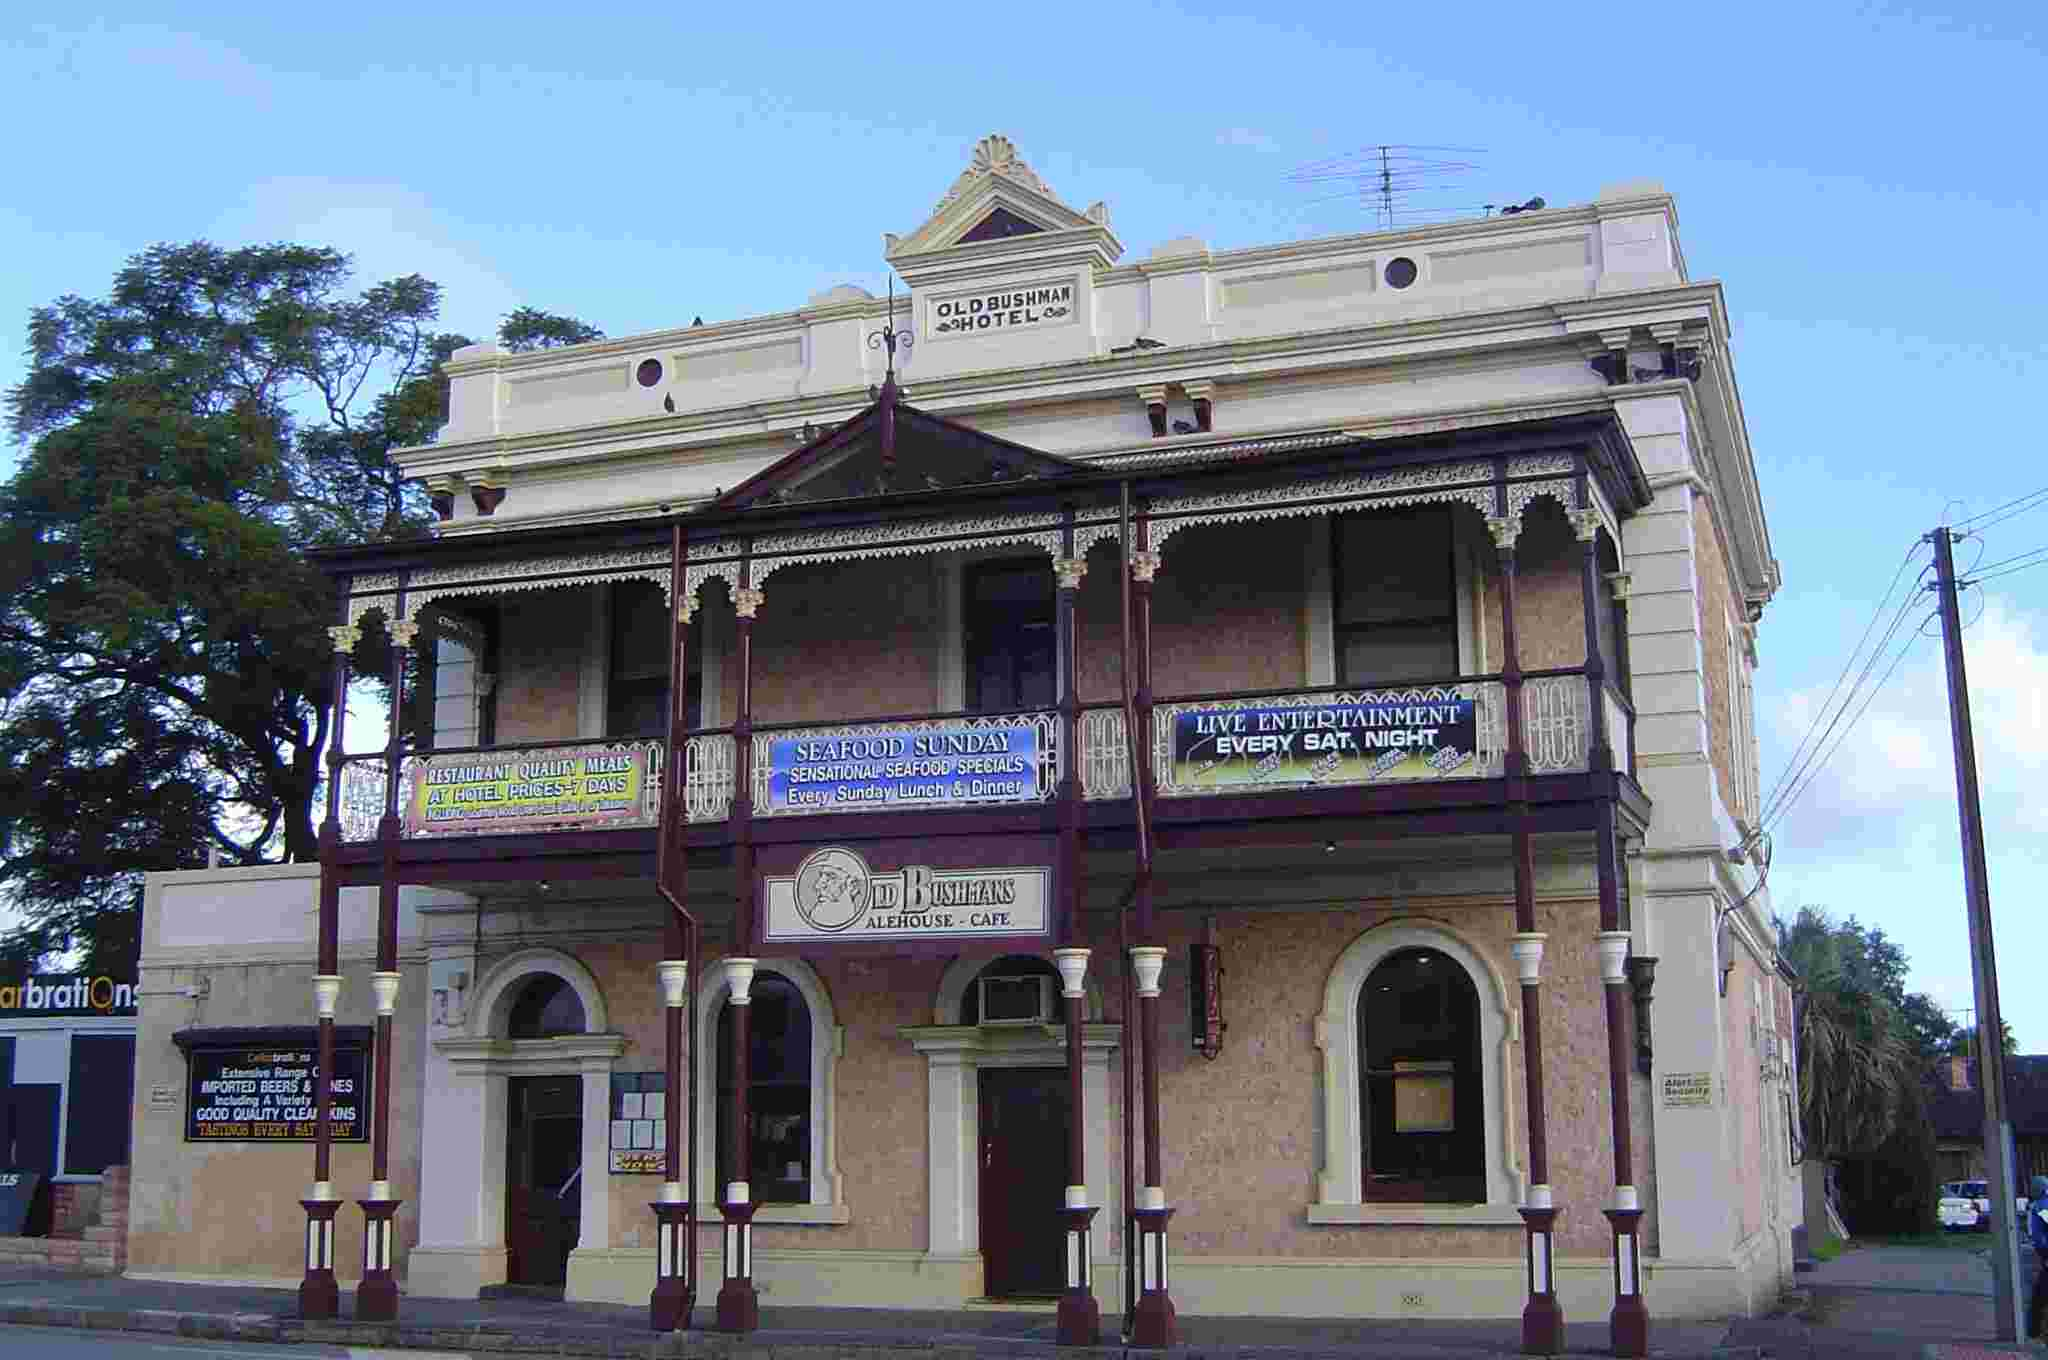 Gawler Australia  city images : Gawler Adelaide Region, South Australia.